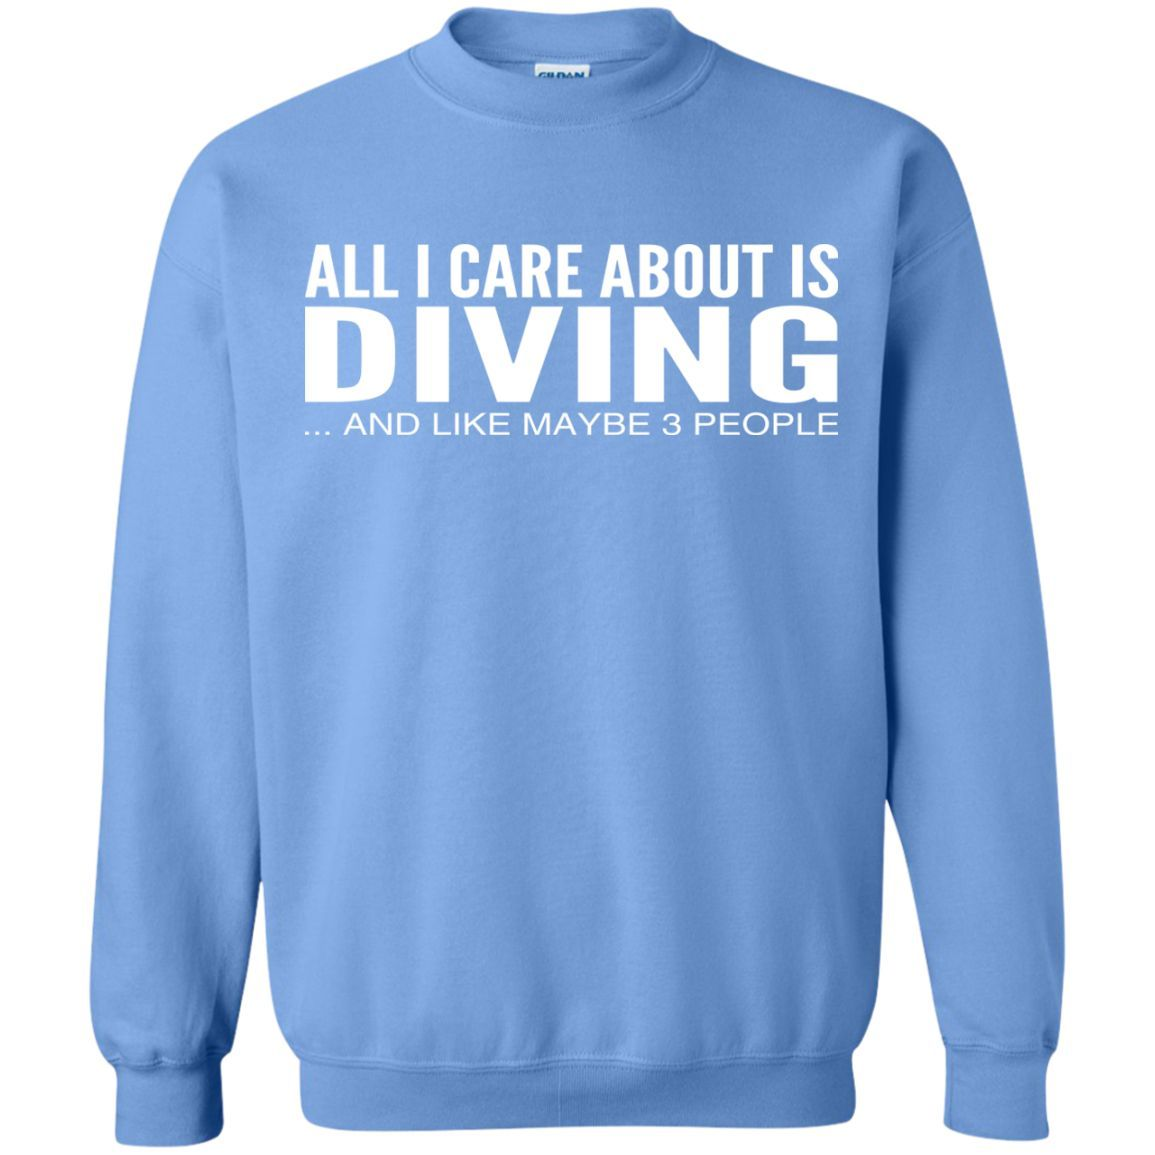 All I Care About Is Diving And Like Maybe 3 People Sweatshirts